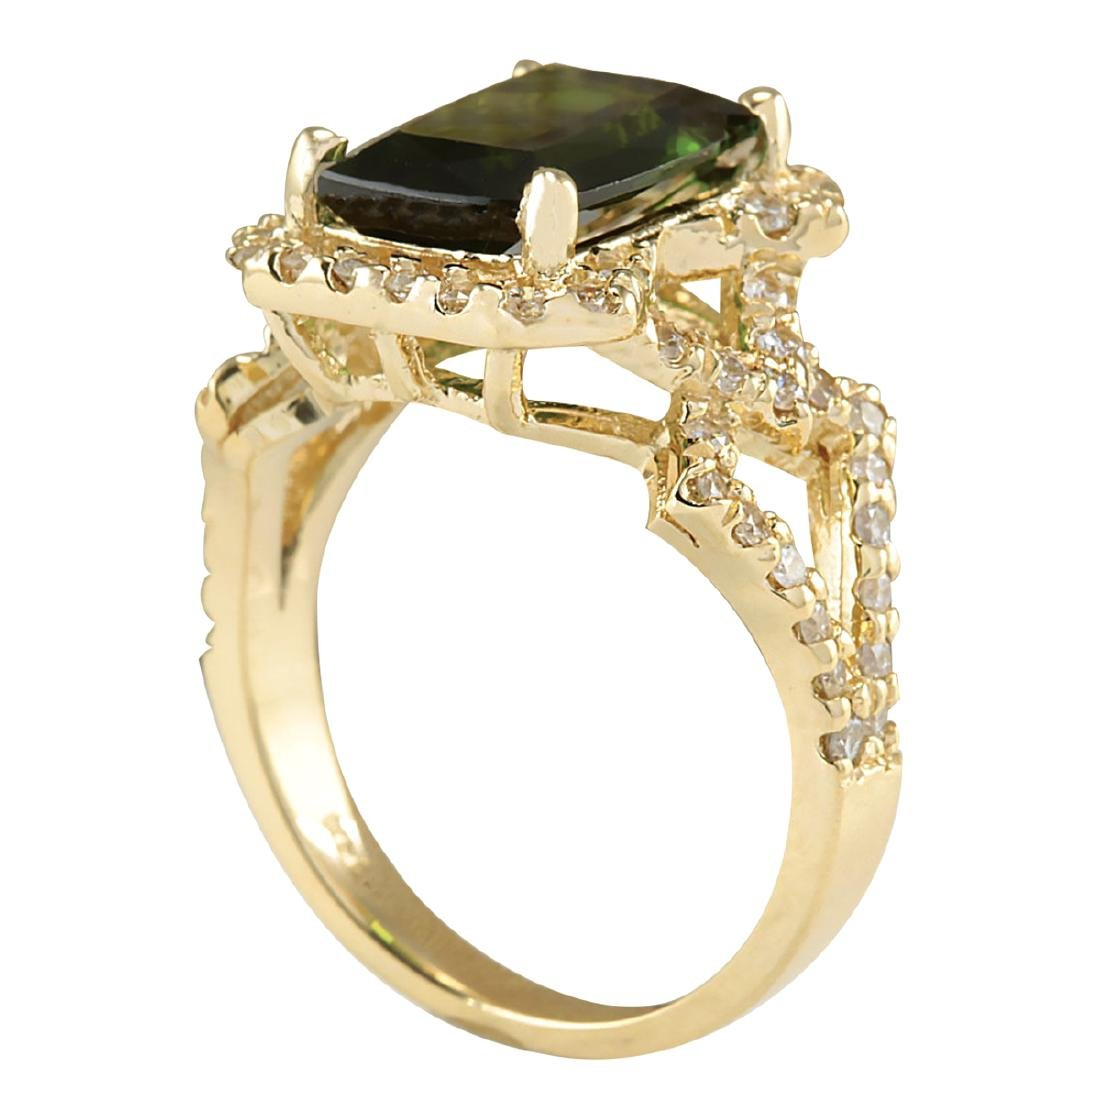 3.84Ct Natural Green Tourmaline And Diamond Ring In18K - 3